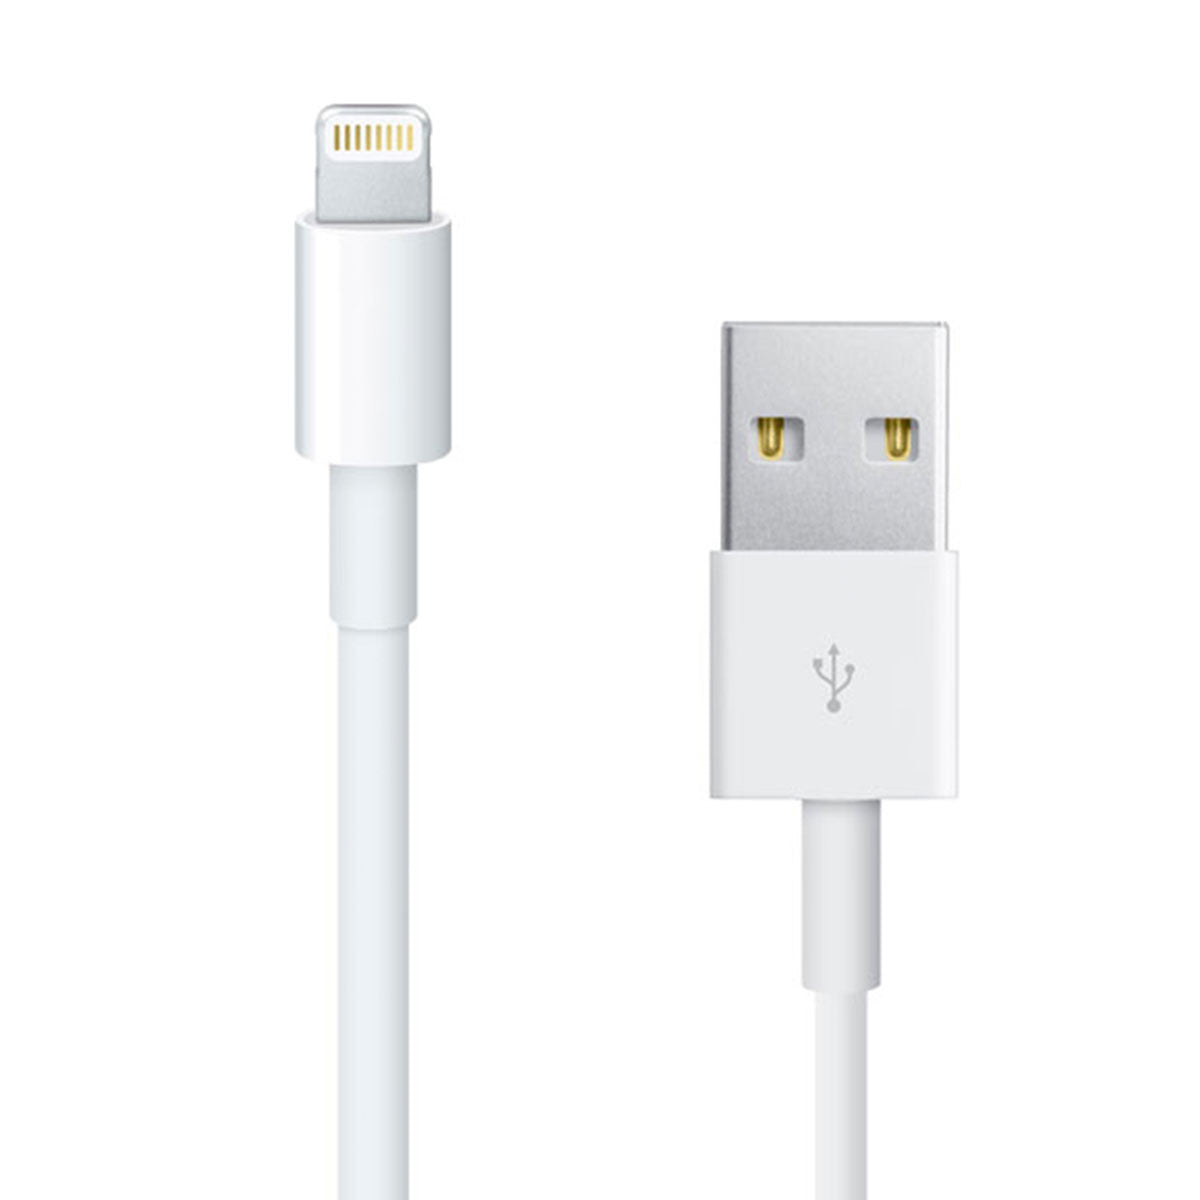 .5m 1m 2m Lightning Charger Cable For Apple iPhone iPad Pro Mini Air iPod